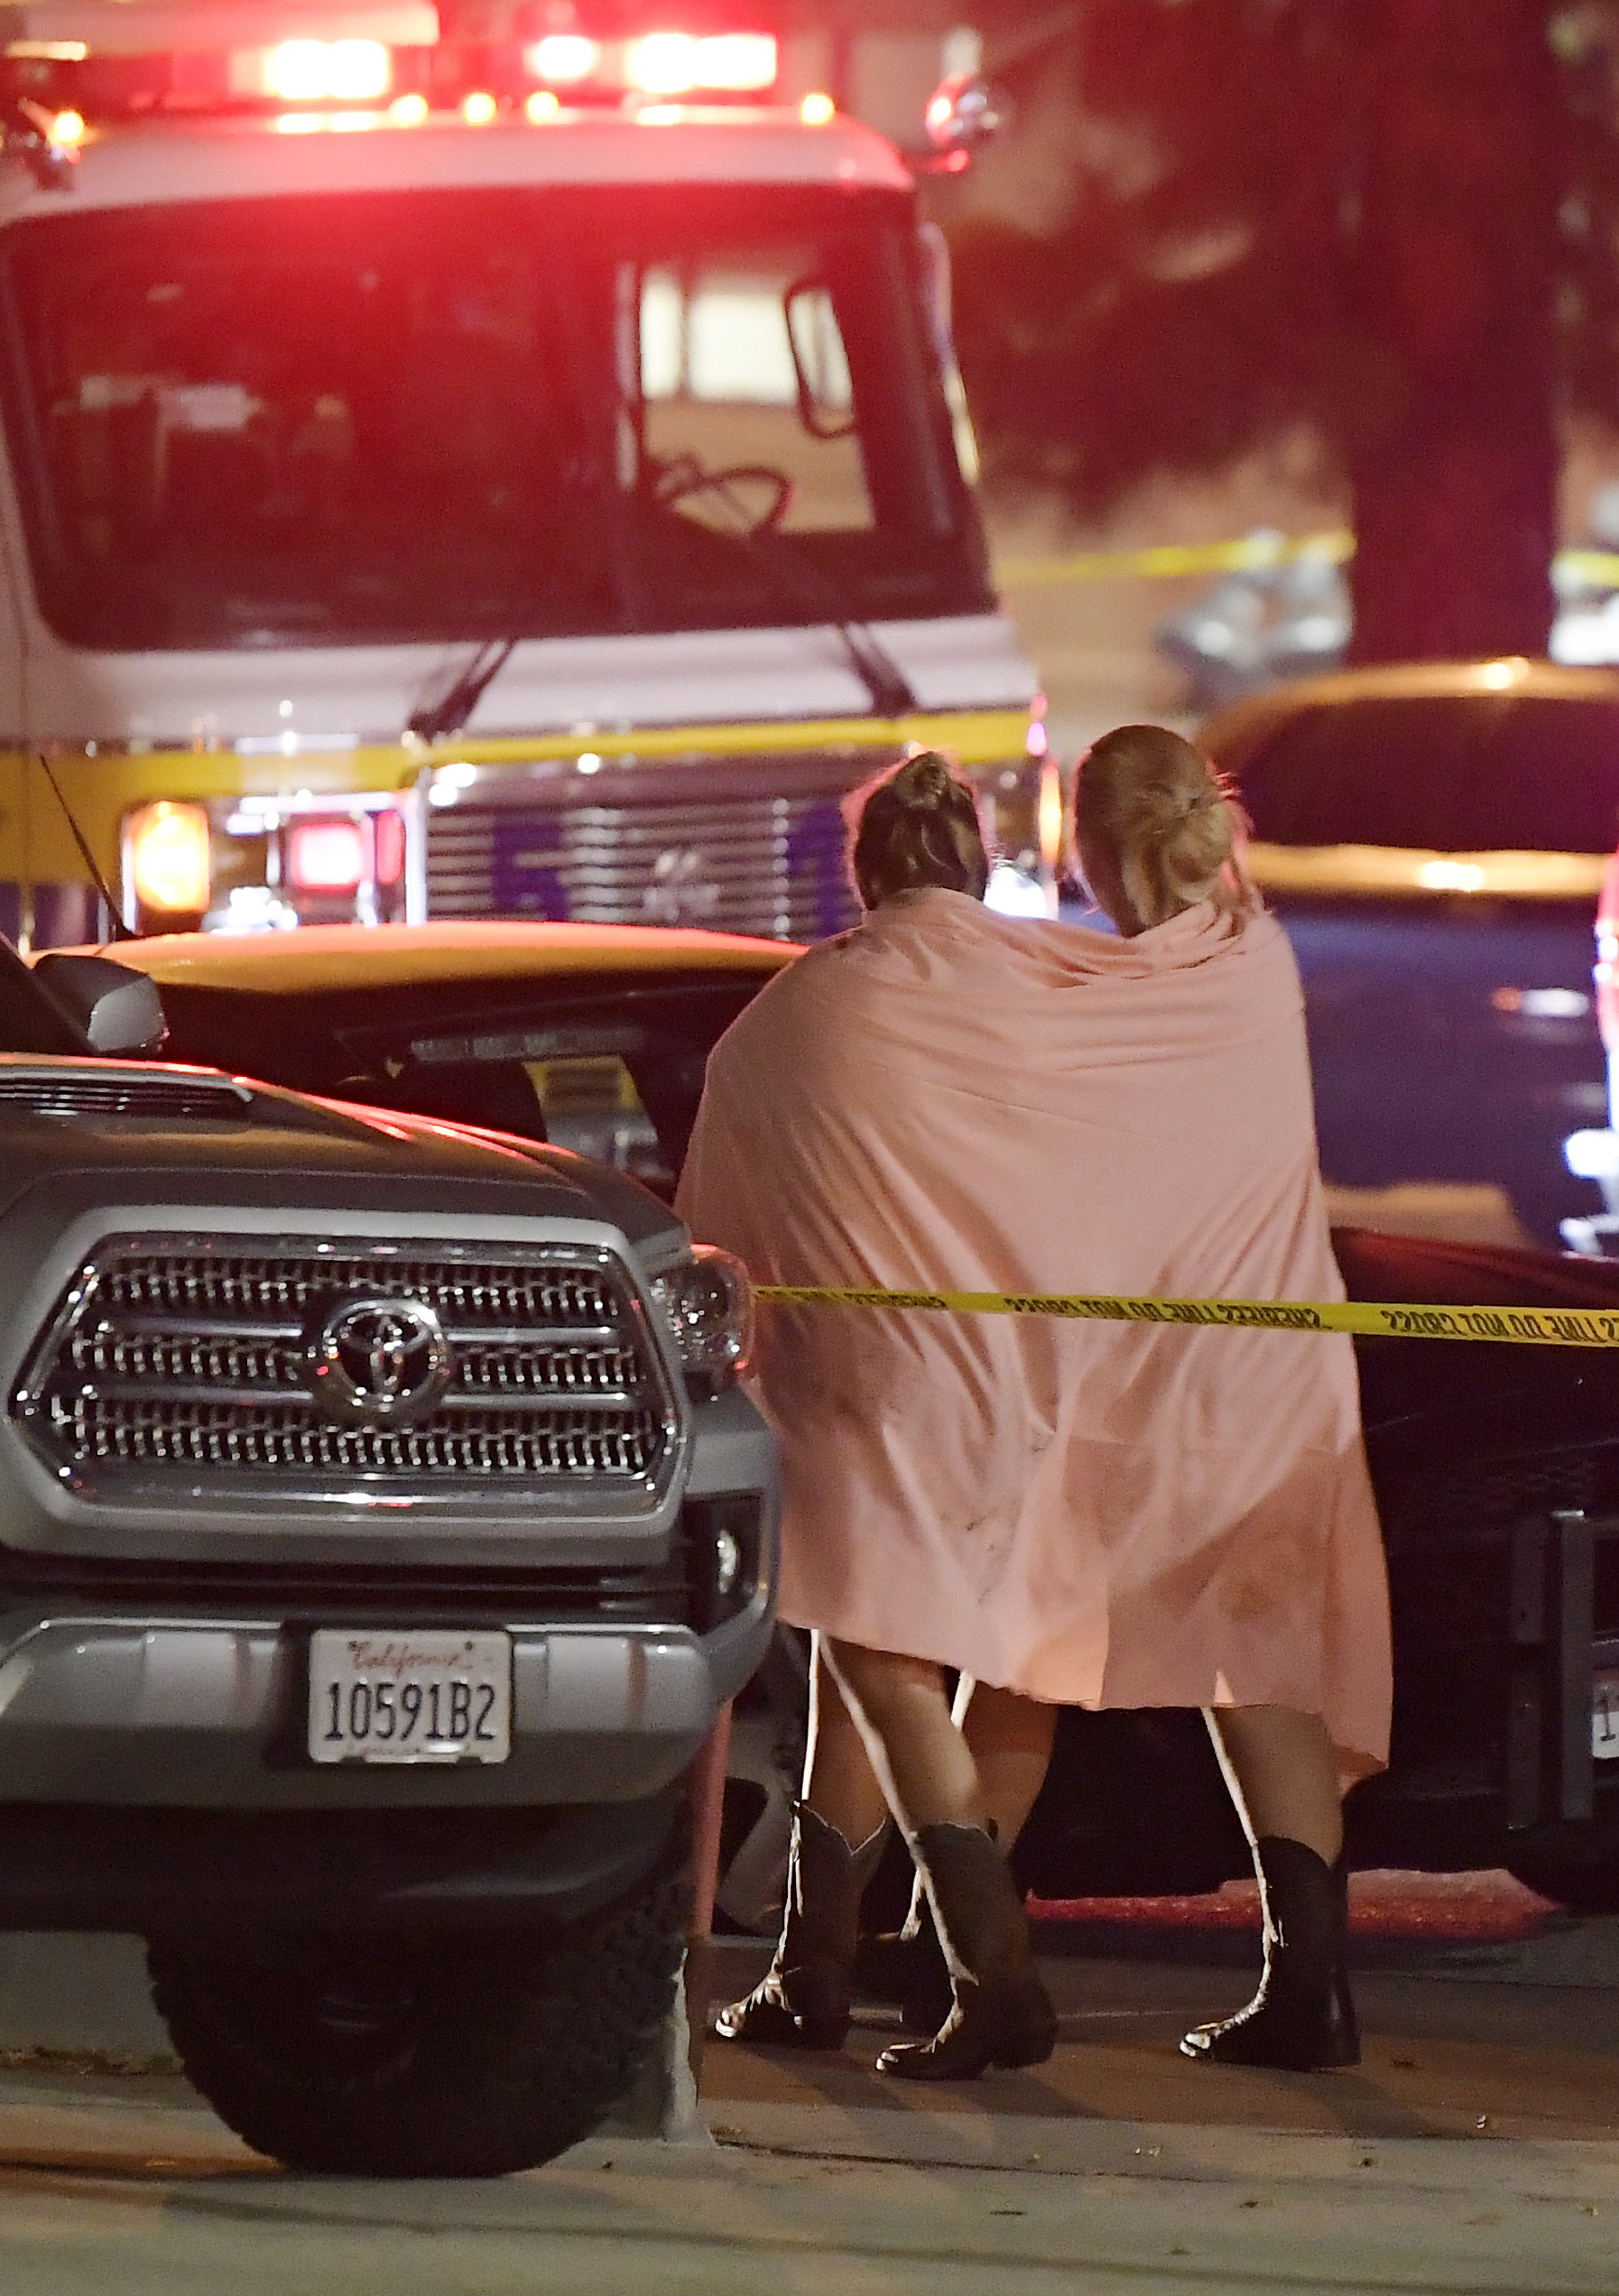 <div class='meta'><div class='origin-logo' data-origin='none'></div><span class='caption-text' data-credit='AP Photo/Mark J. Terrill'>People walk away from the scene after a gunman opens fire on a nightclub in California.</span></div>